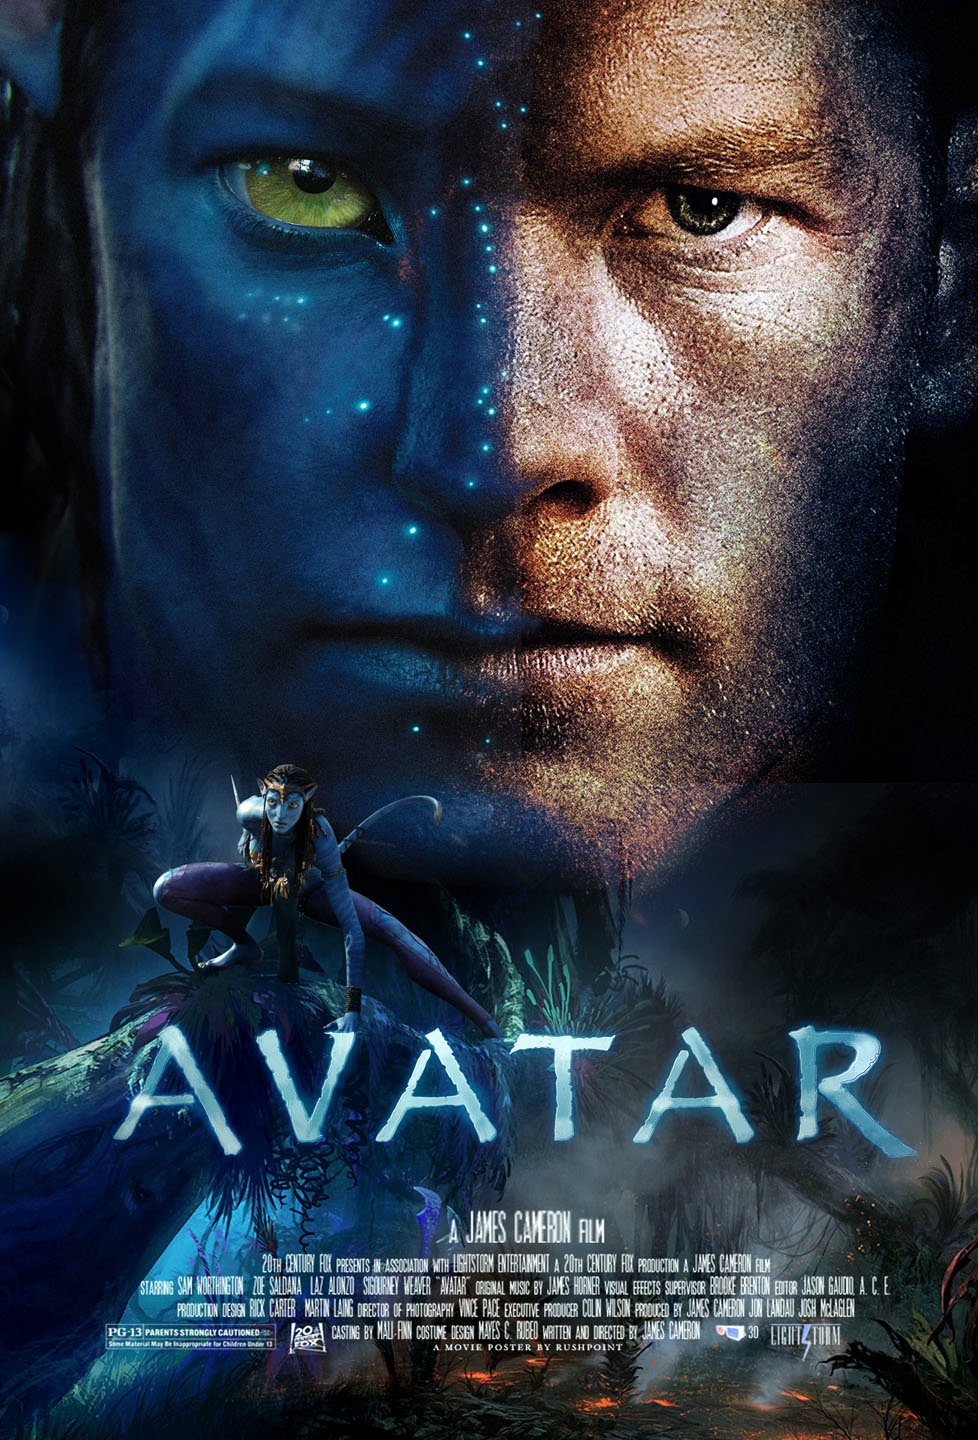 Avatar (2009) Extended BluRay 720p MKV | Free Mediafire English Movie ...: www.funloadz.com/2012/03/avatar-2009-extended-bluray-720p-mkv.html